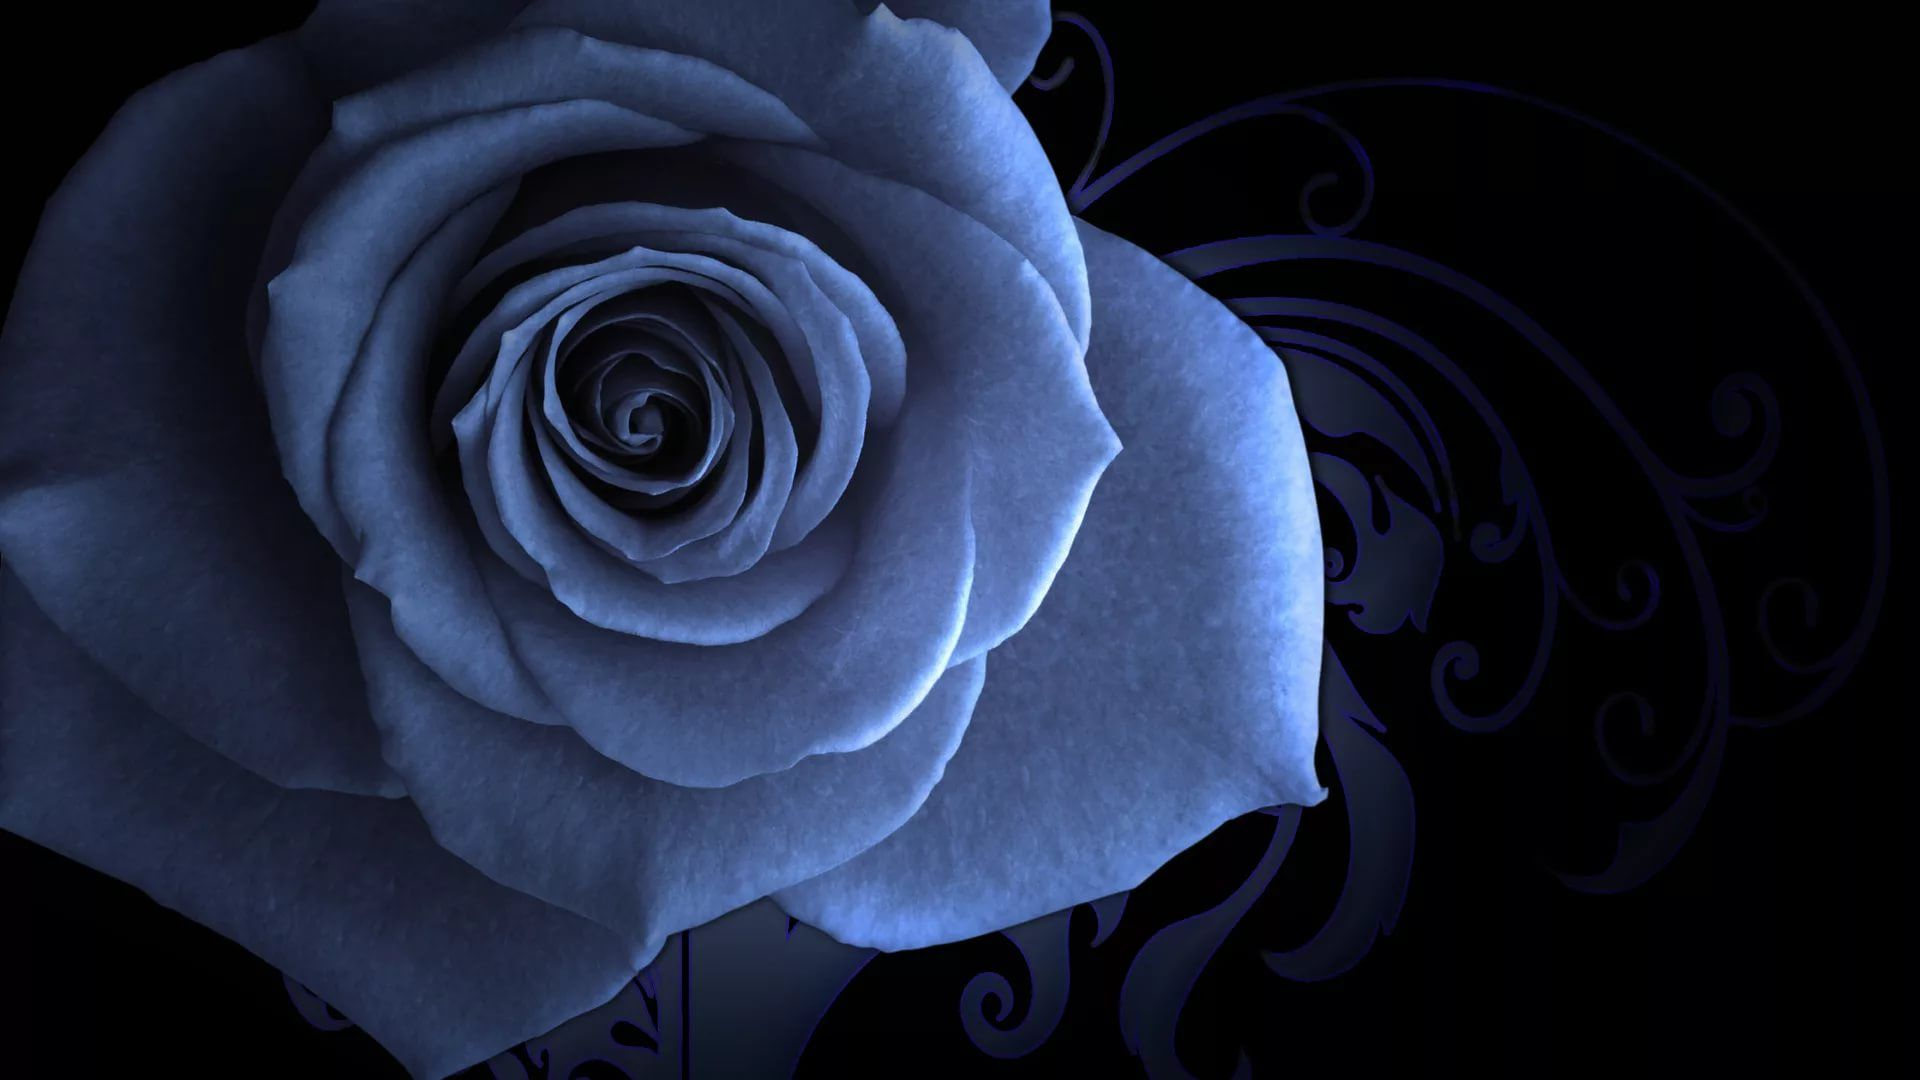 Blue Rose download nice wallpaper